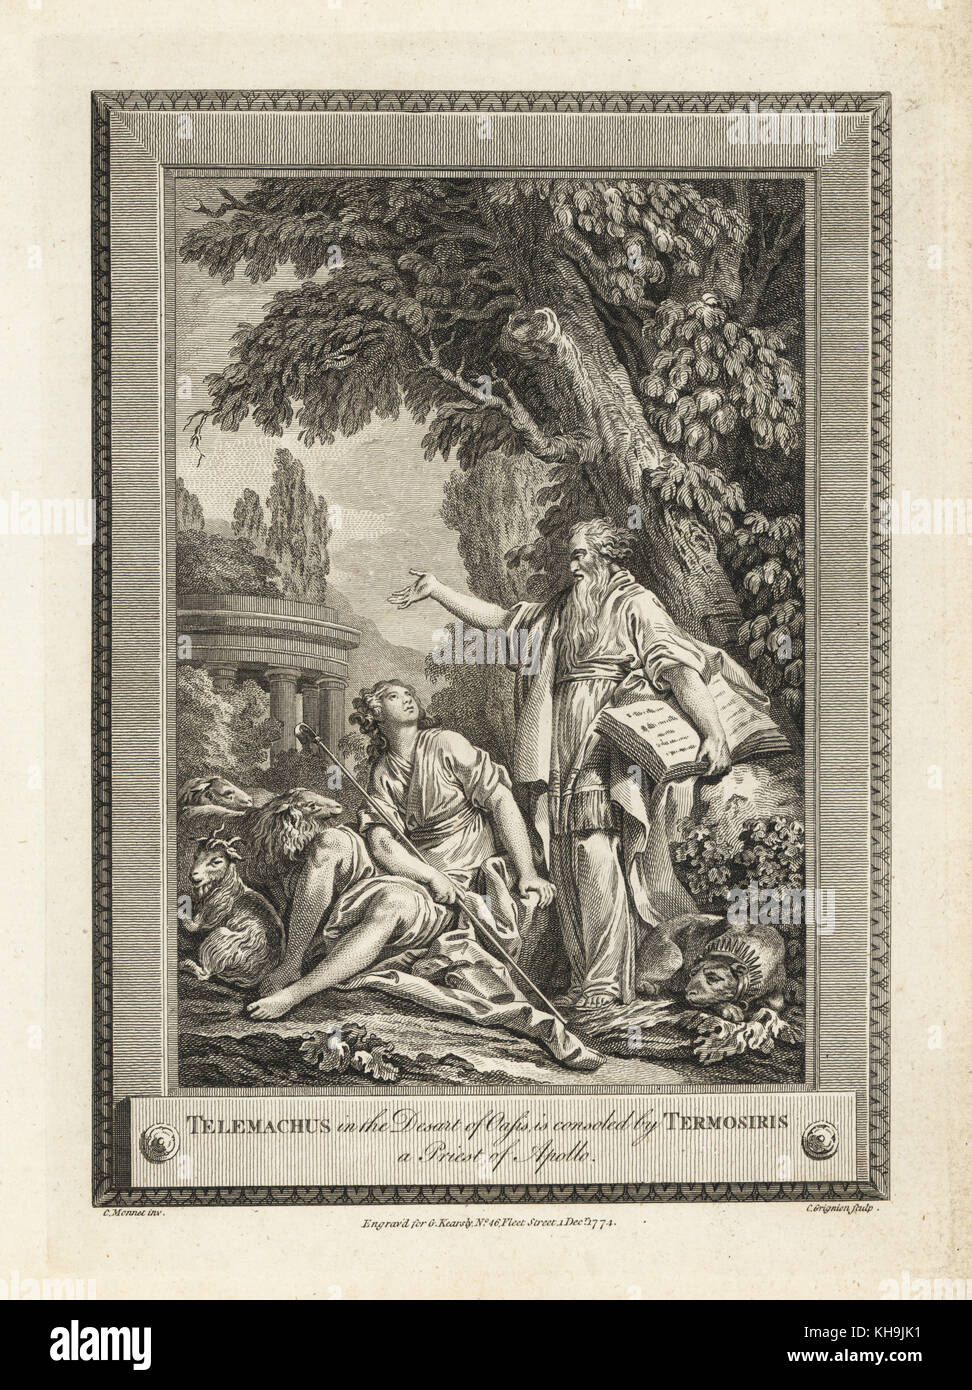 Telemachus in the desert of oasis is consoled by Termosiris, a priest of Apollo. Copperplate engraving by C. Grignion - Stock Image